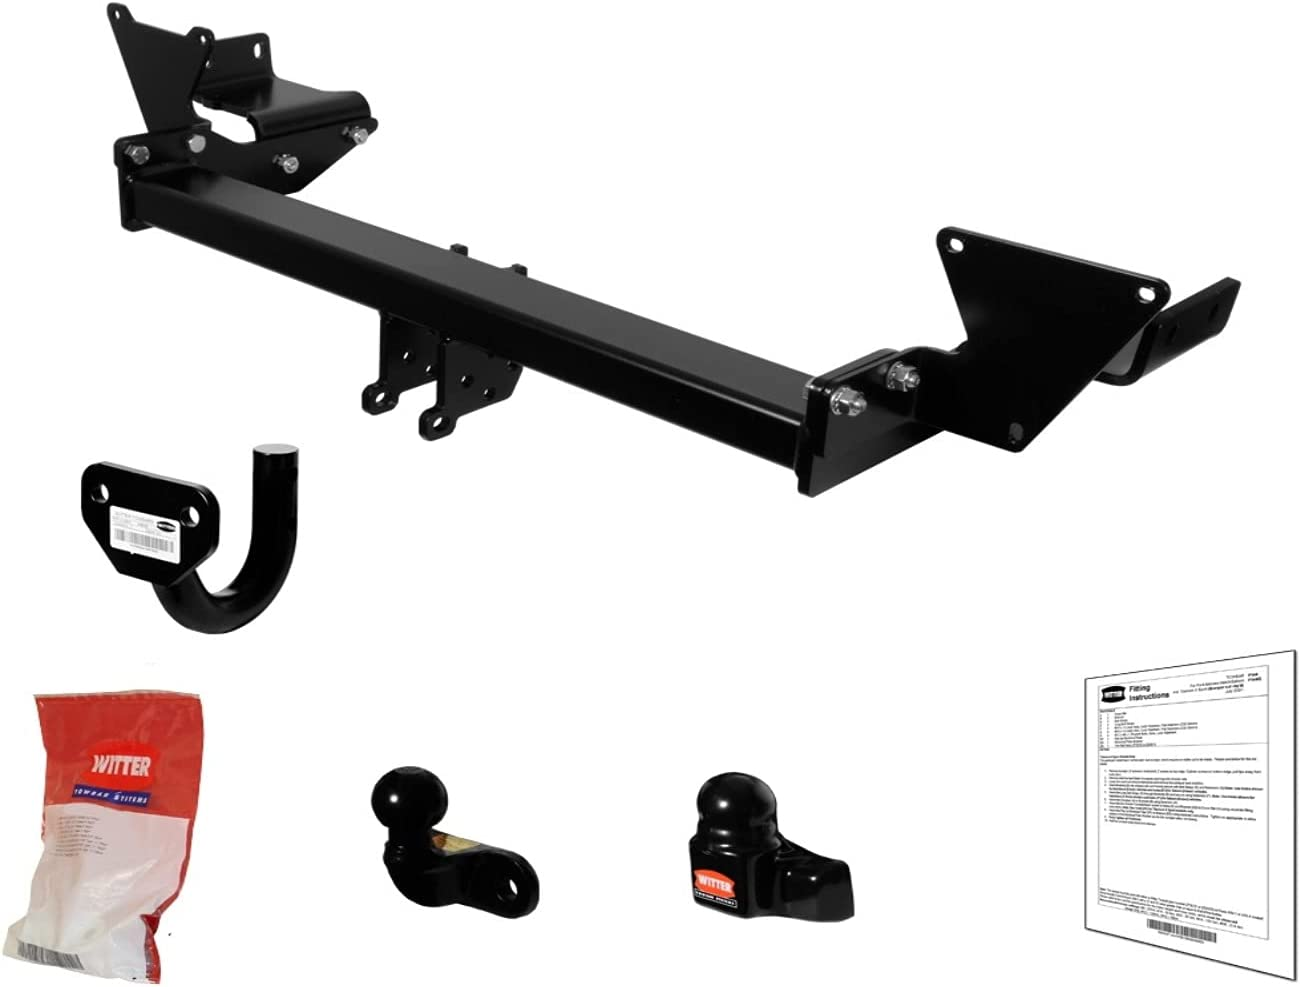 Upgradable Fixed Flange Towbar Two Max 53% online shop OFF Hole Esta for Legacy Subaru